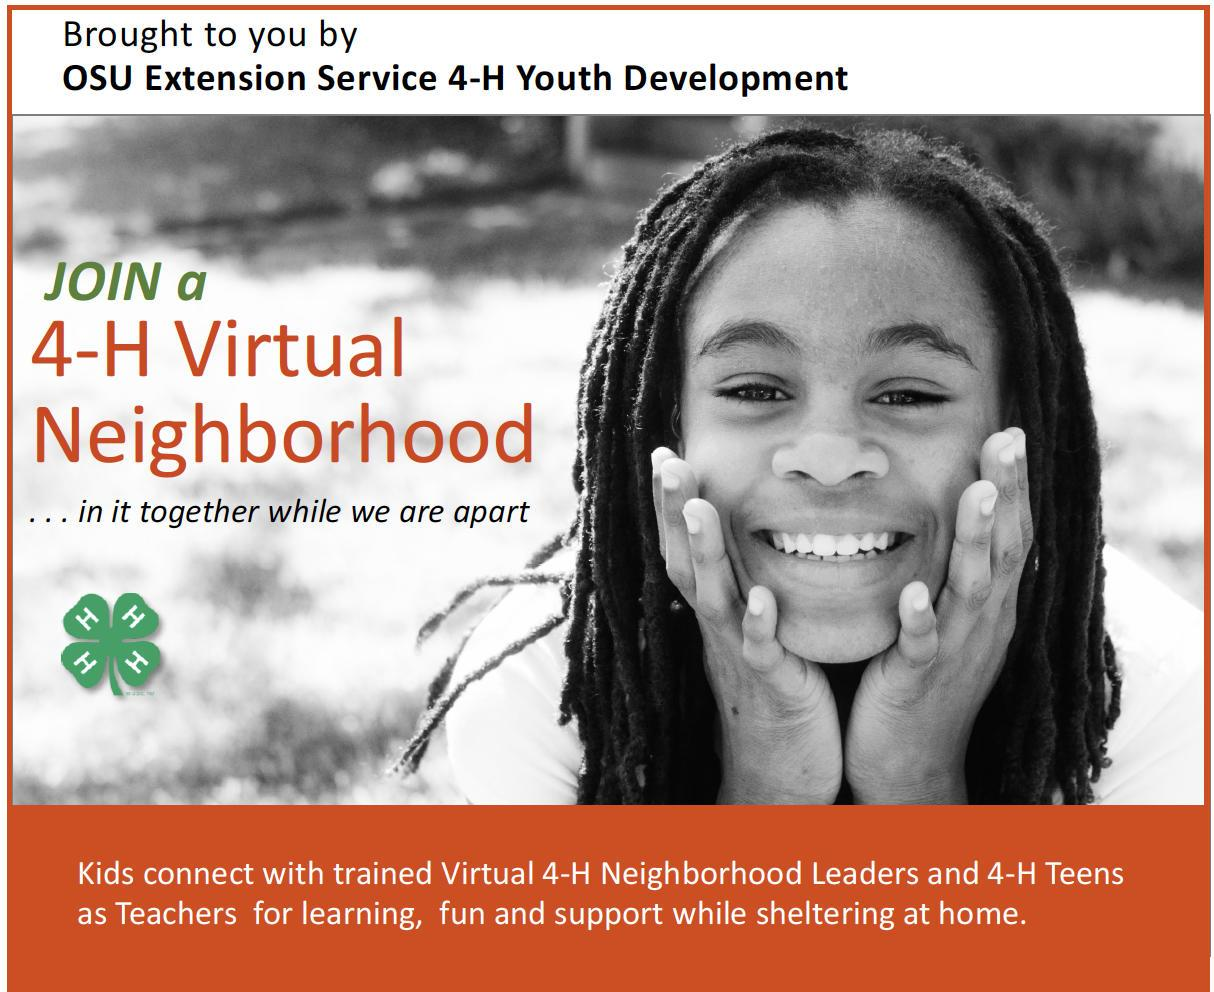 Join a 4-H Virtual Neighborhood ... in it together while we area apart. Kids connect with trained Virtual 4-H Neighborhood Leaders and 4-H Teens as Teachers for learning, fun and support while sheltering at home. Brought to you buy OSU Extension Service 4-H Youth Development.